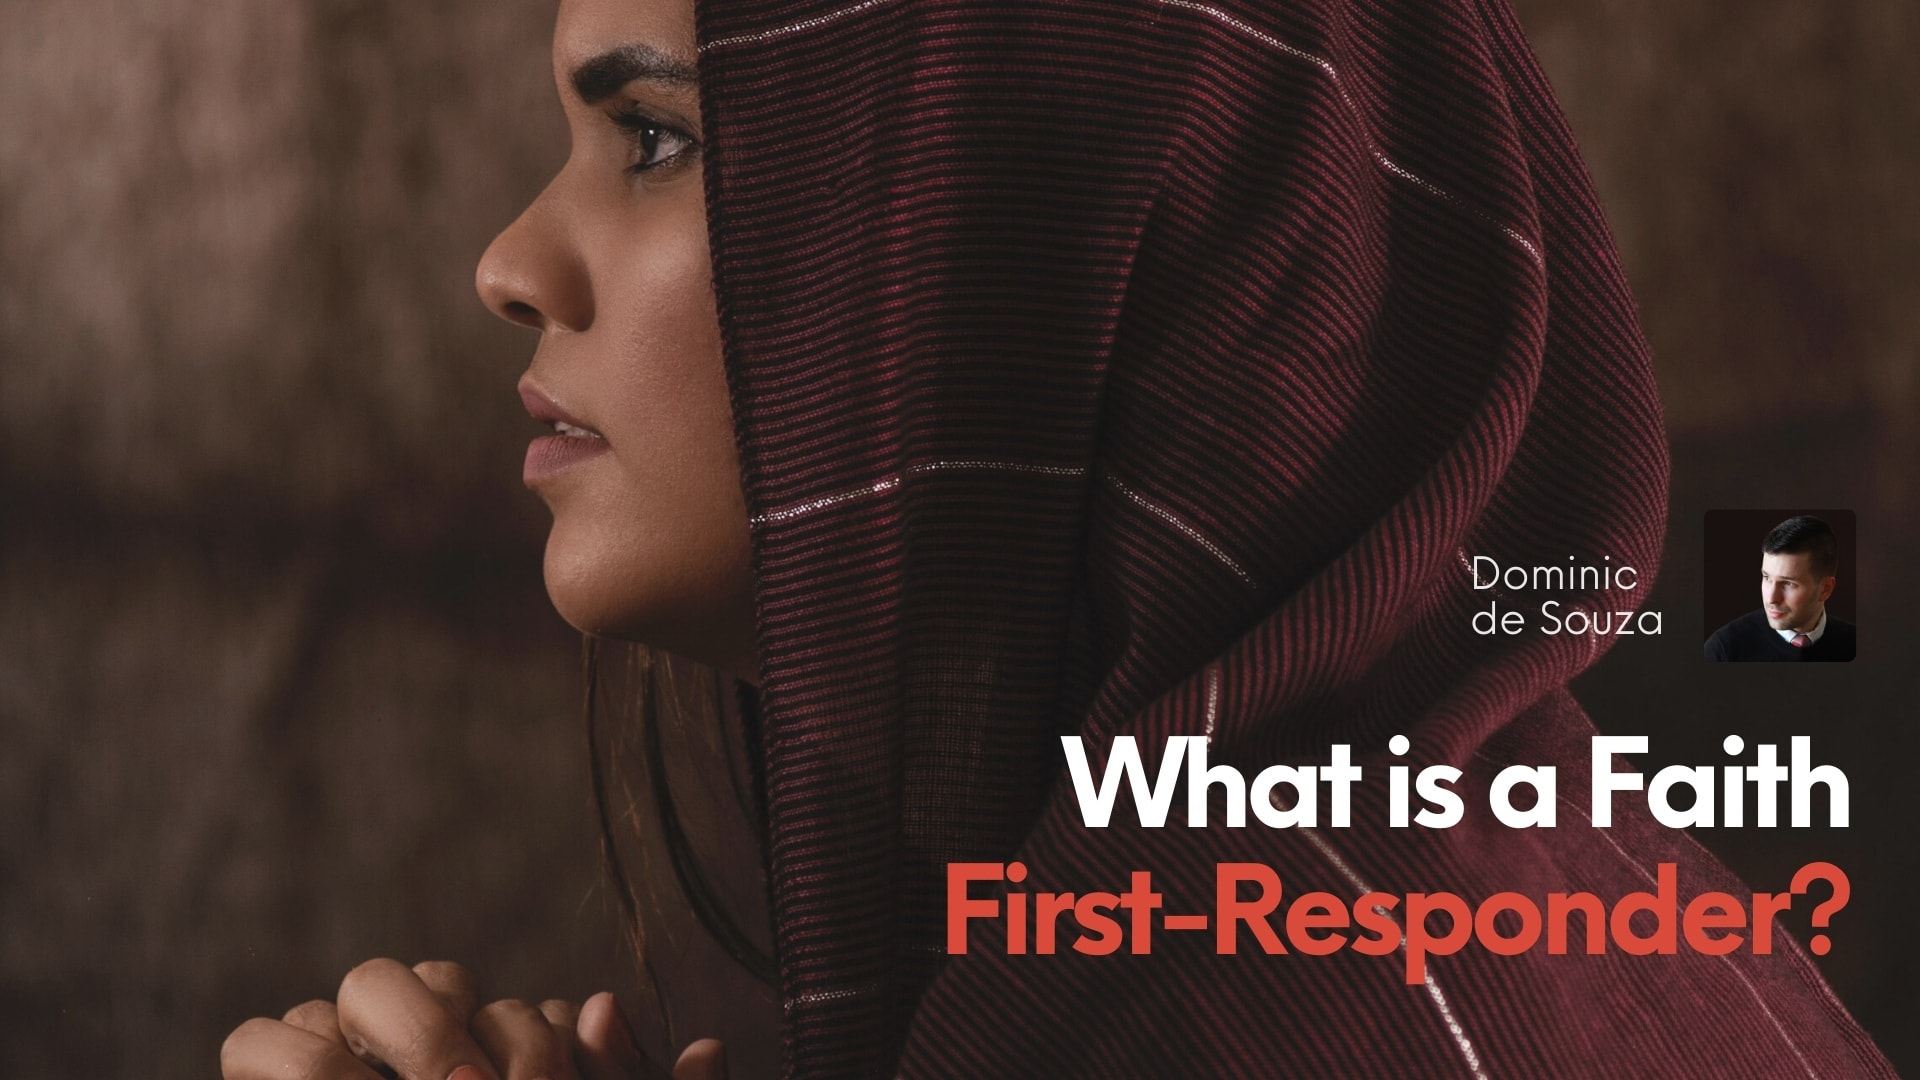 What is a Faith First-Responder?